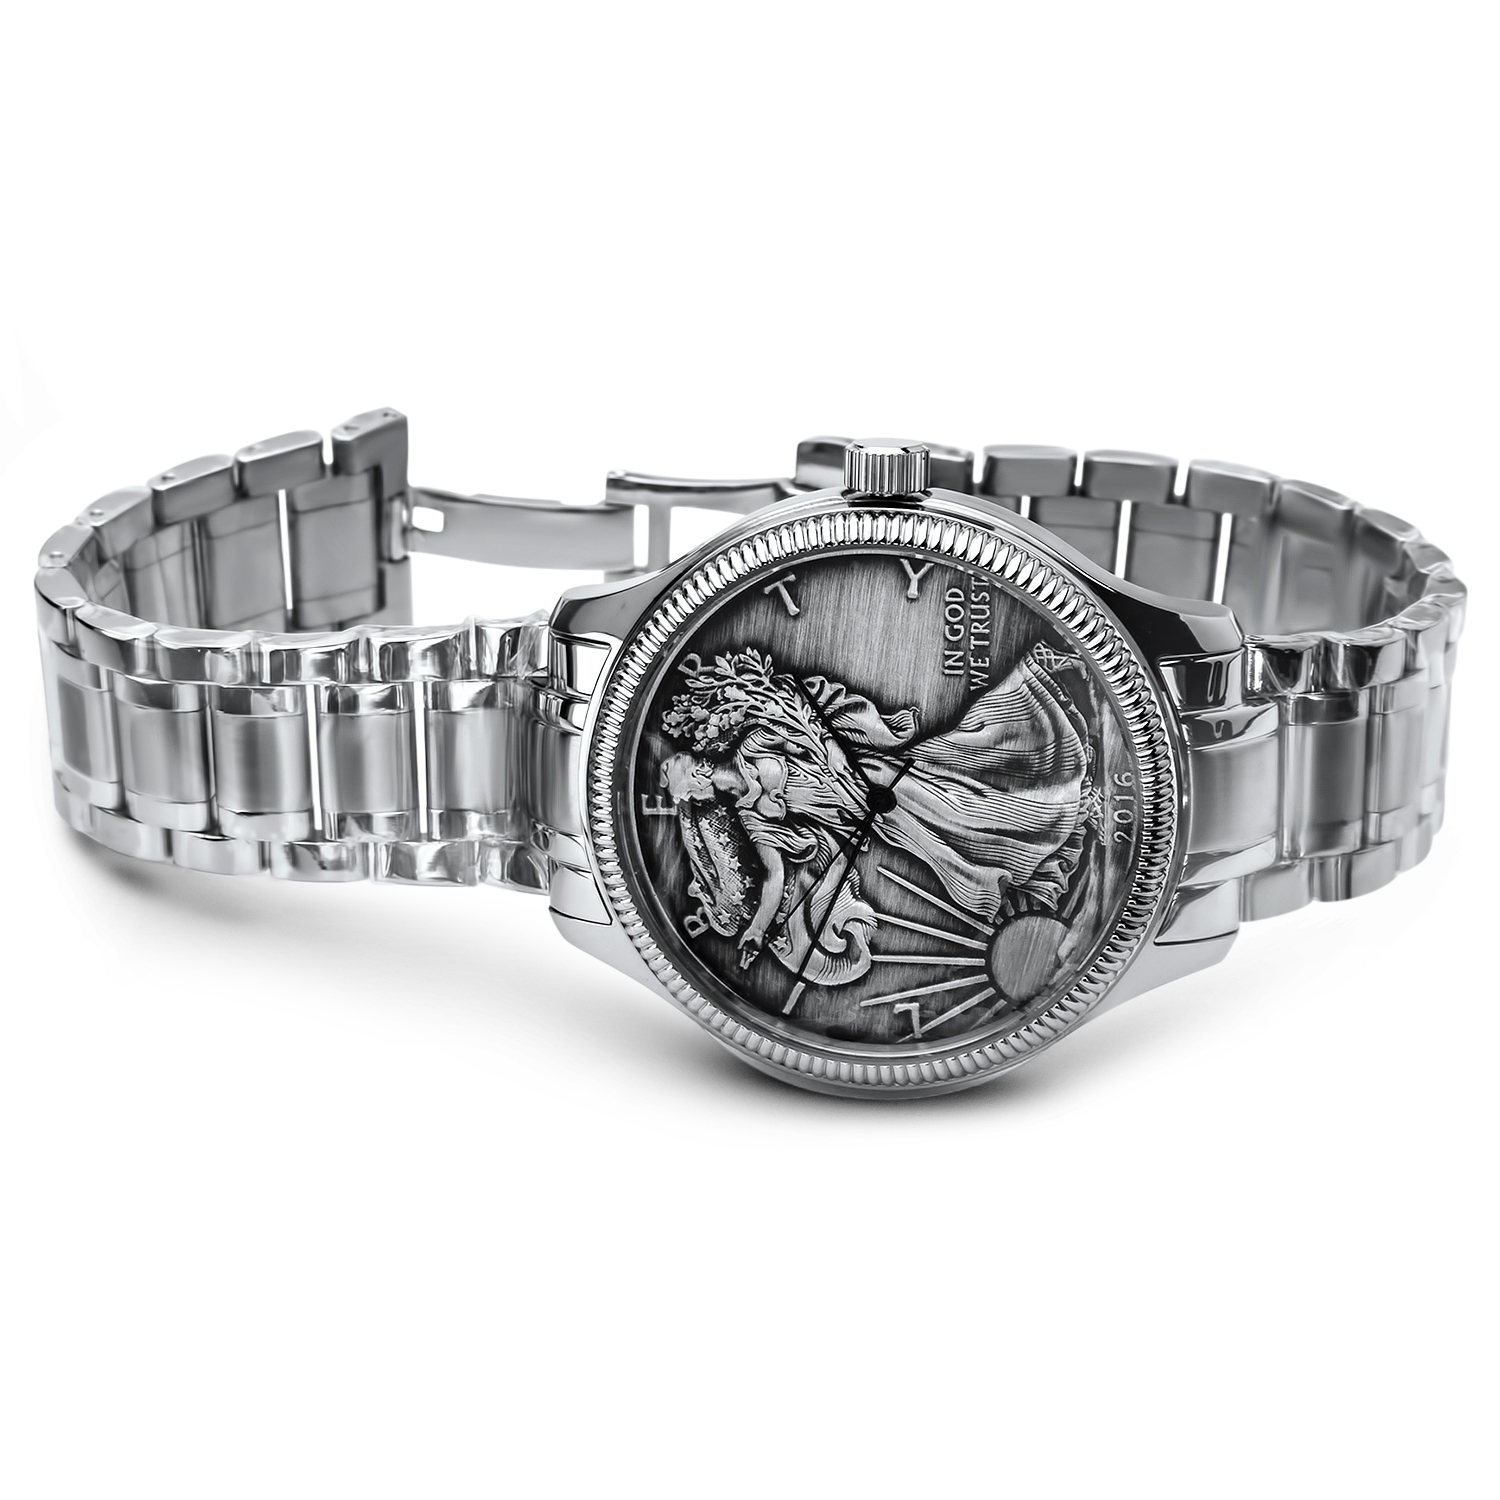 2016 Men's Antiqued SAE Watch Stainless Steel Bracelet